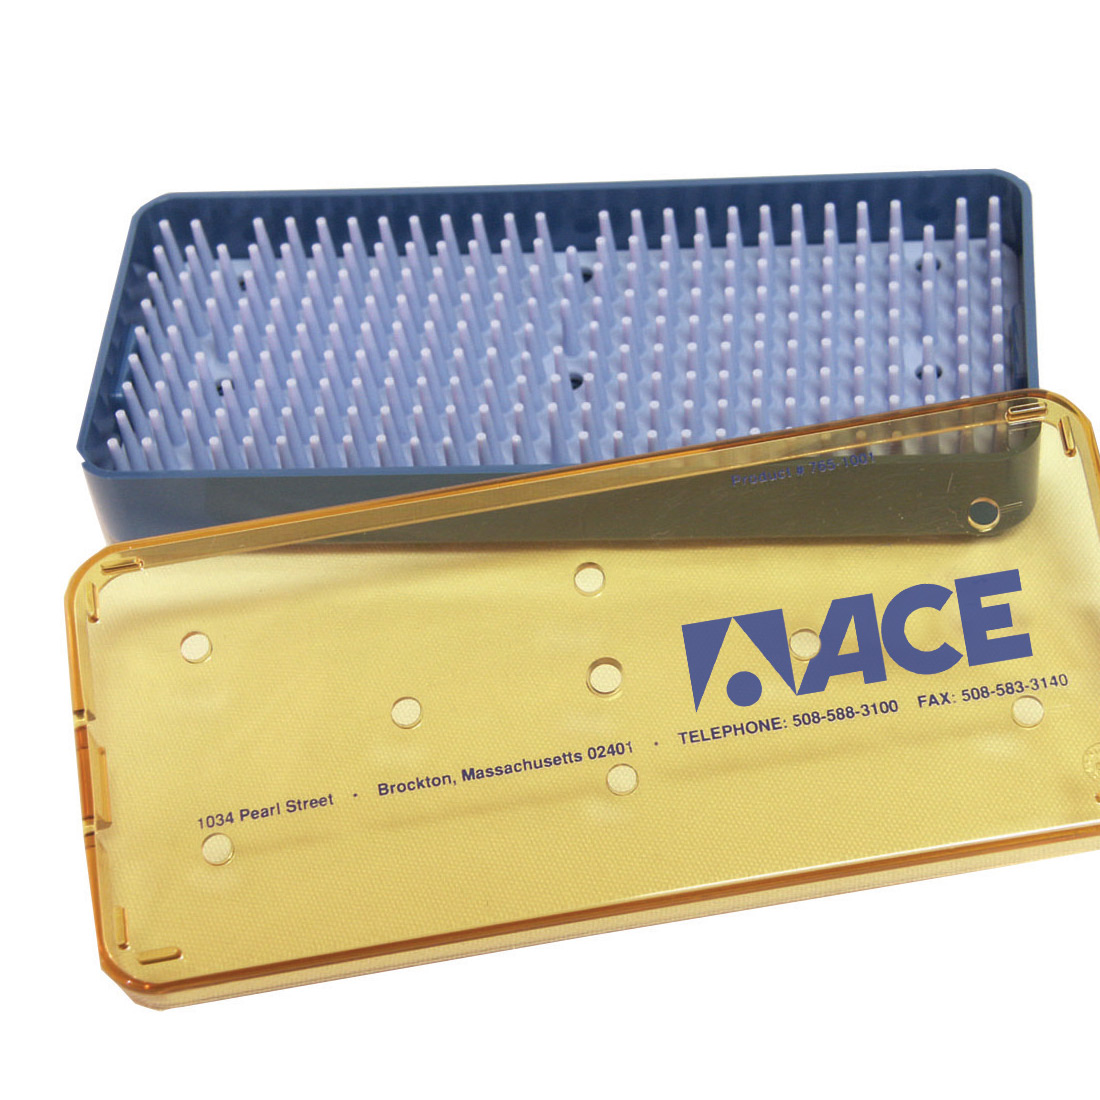 Ace Surgical Supply Co Inc Sterilization Tray